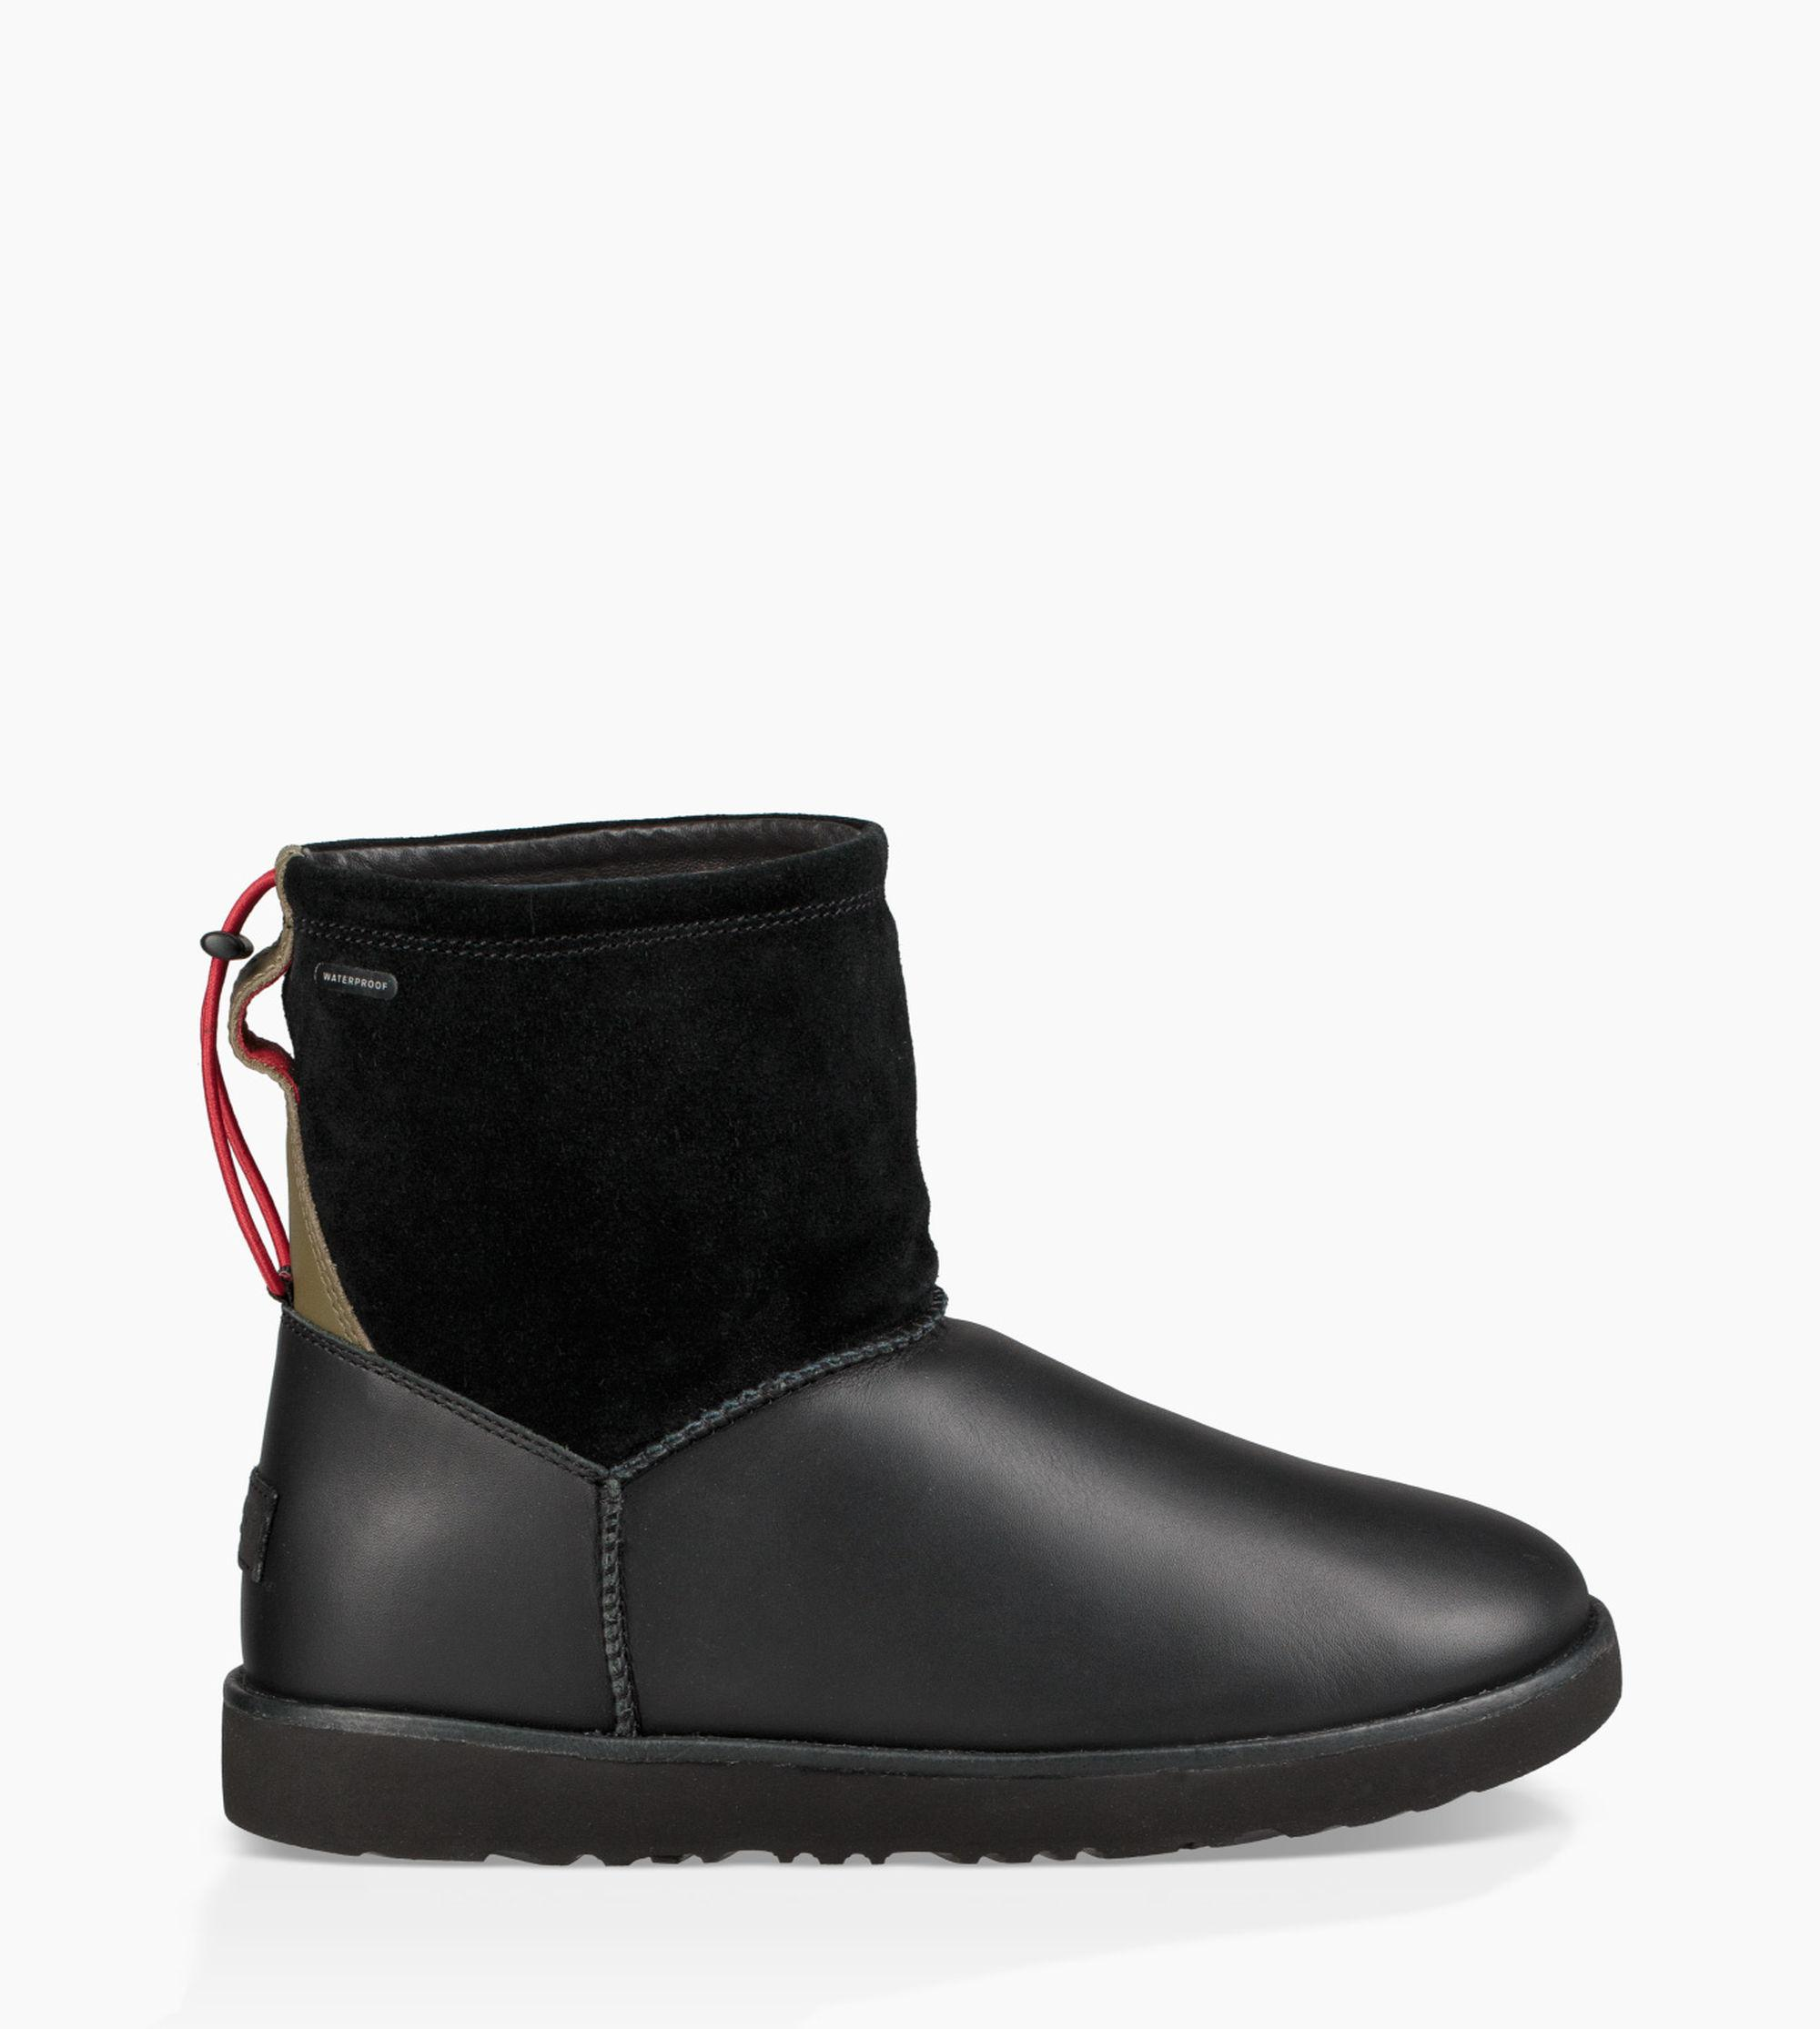 bc8c143a2 ... Black Classic Toggle Waterproof Boot Classic Toggle Waterproof Boot for  Men - Lyst. Visit UGG. Tap to visit site